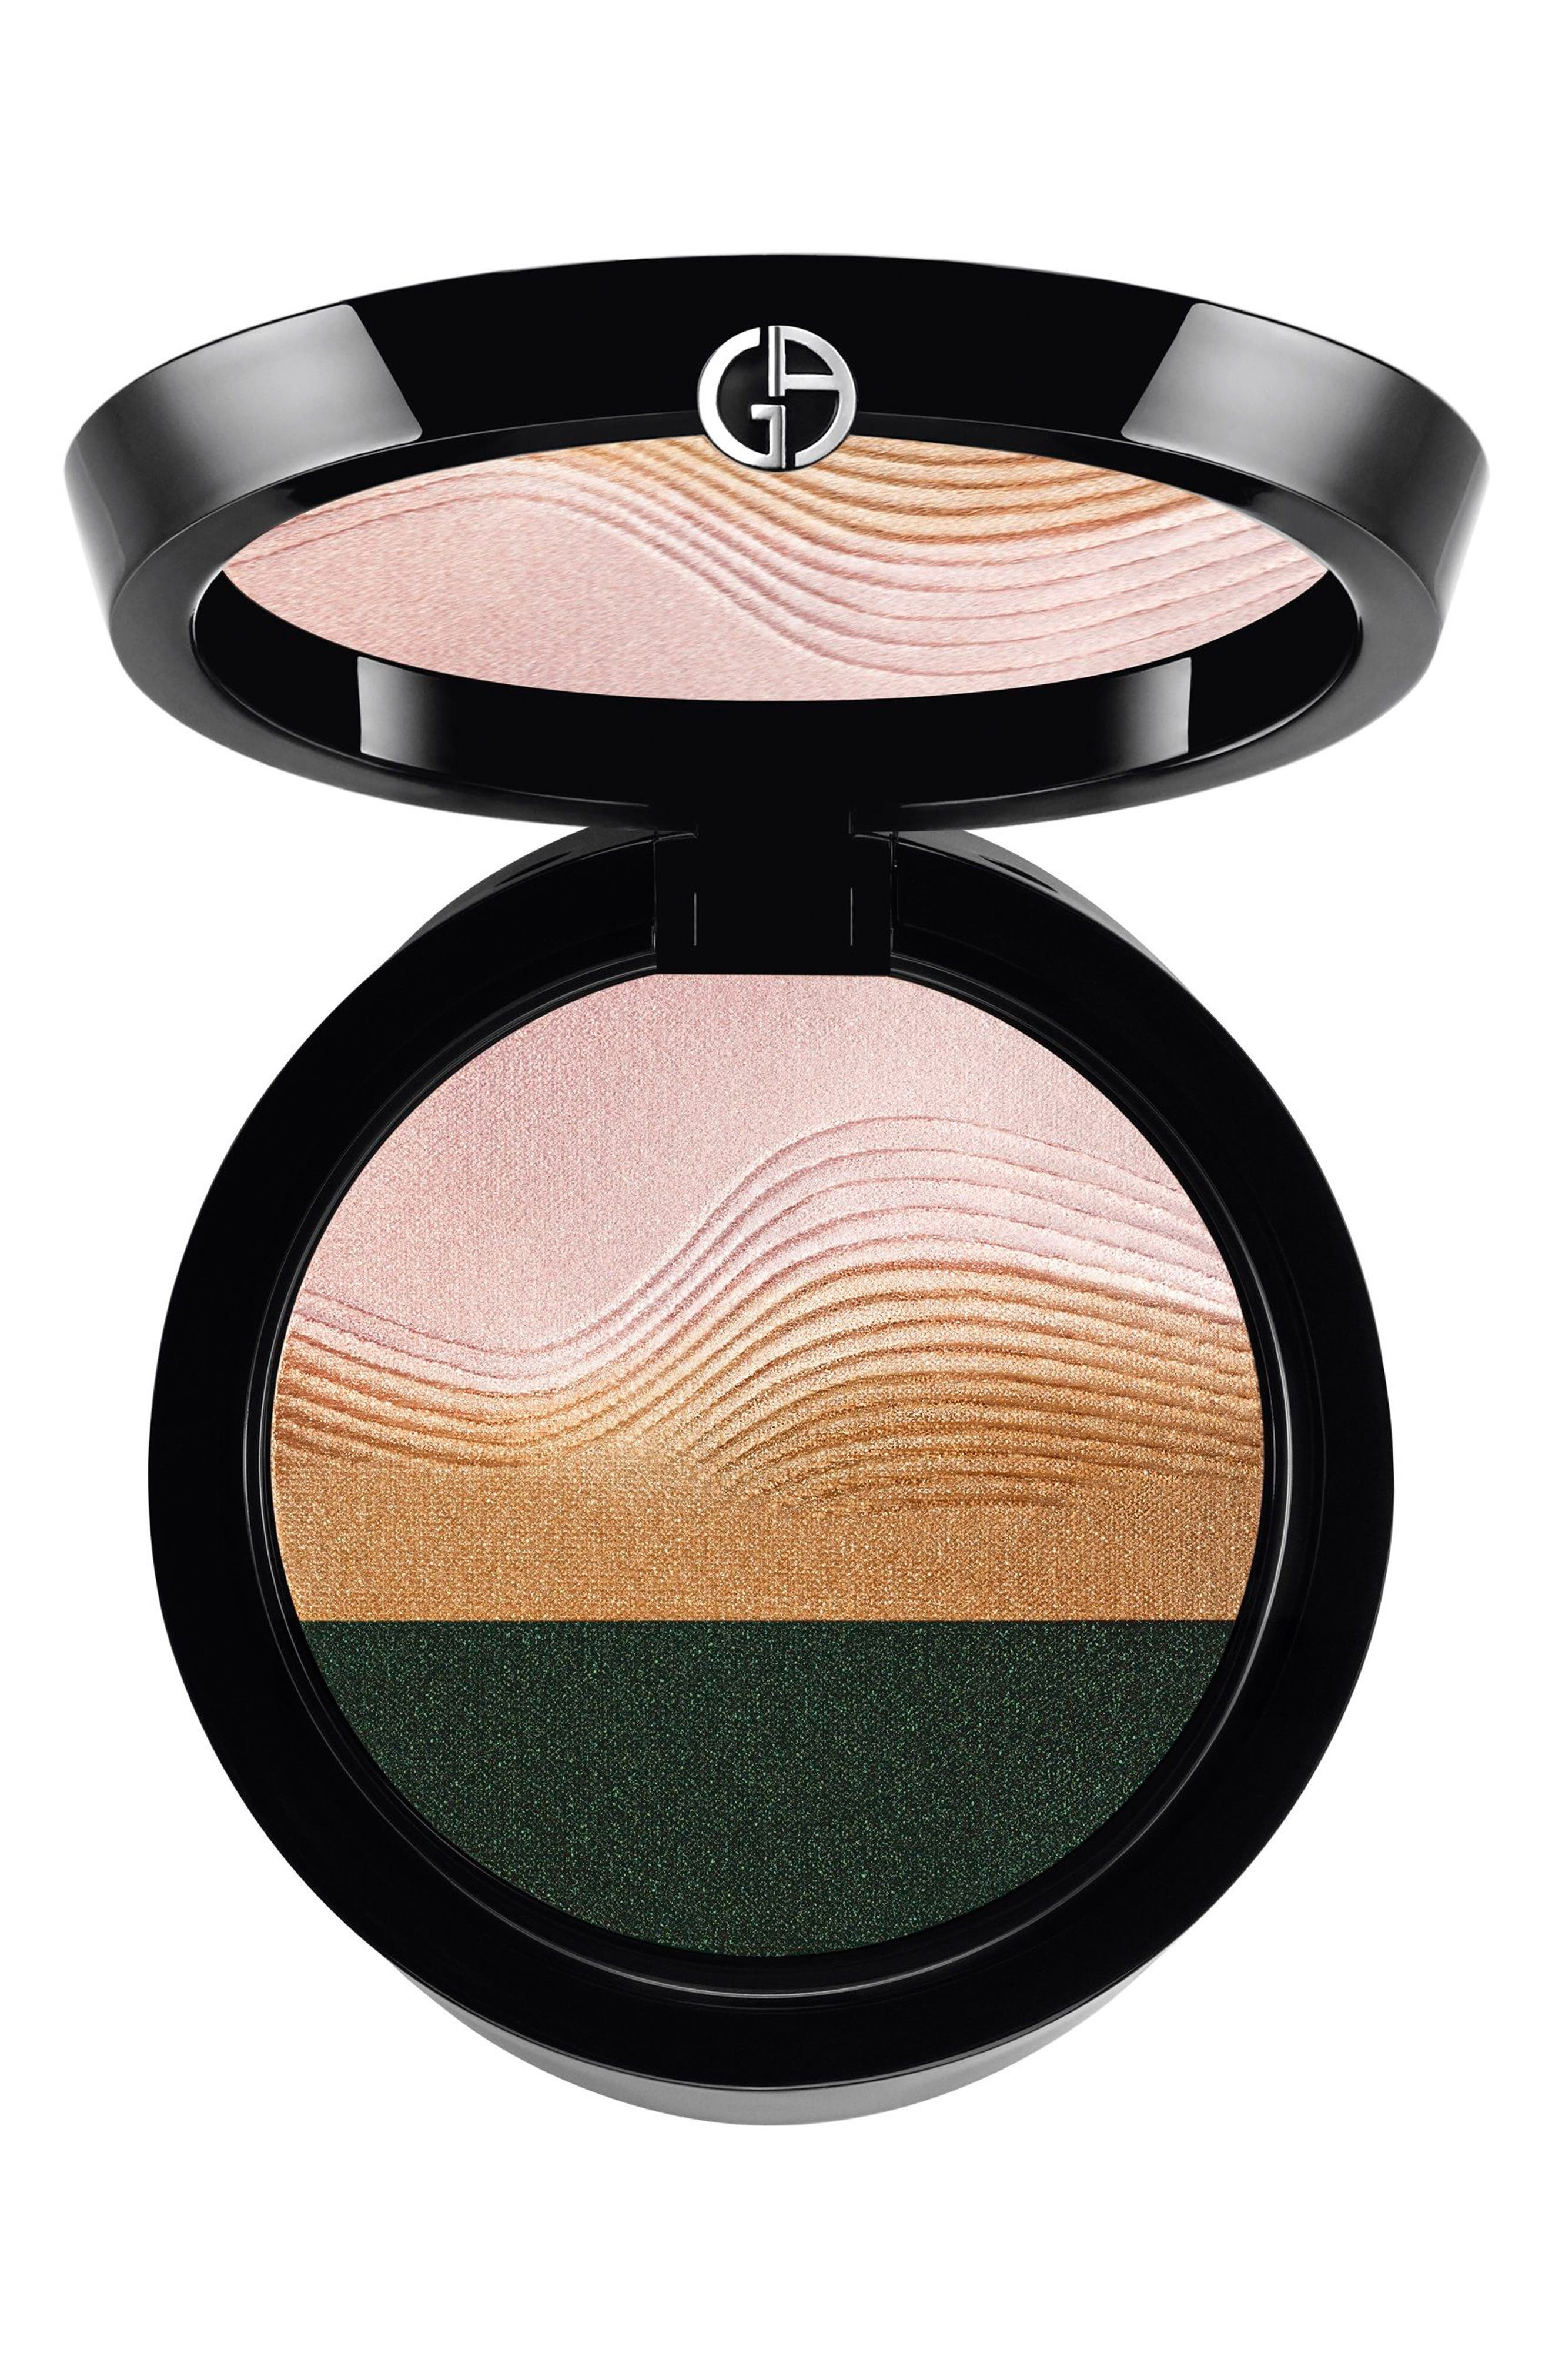 Main Image - Giorgio Armani Life is a Cruise Sunset Eye Palette